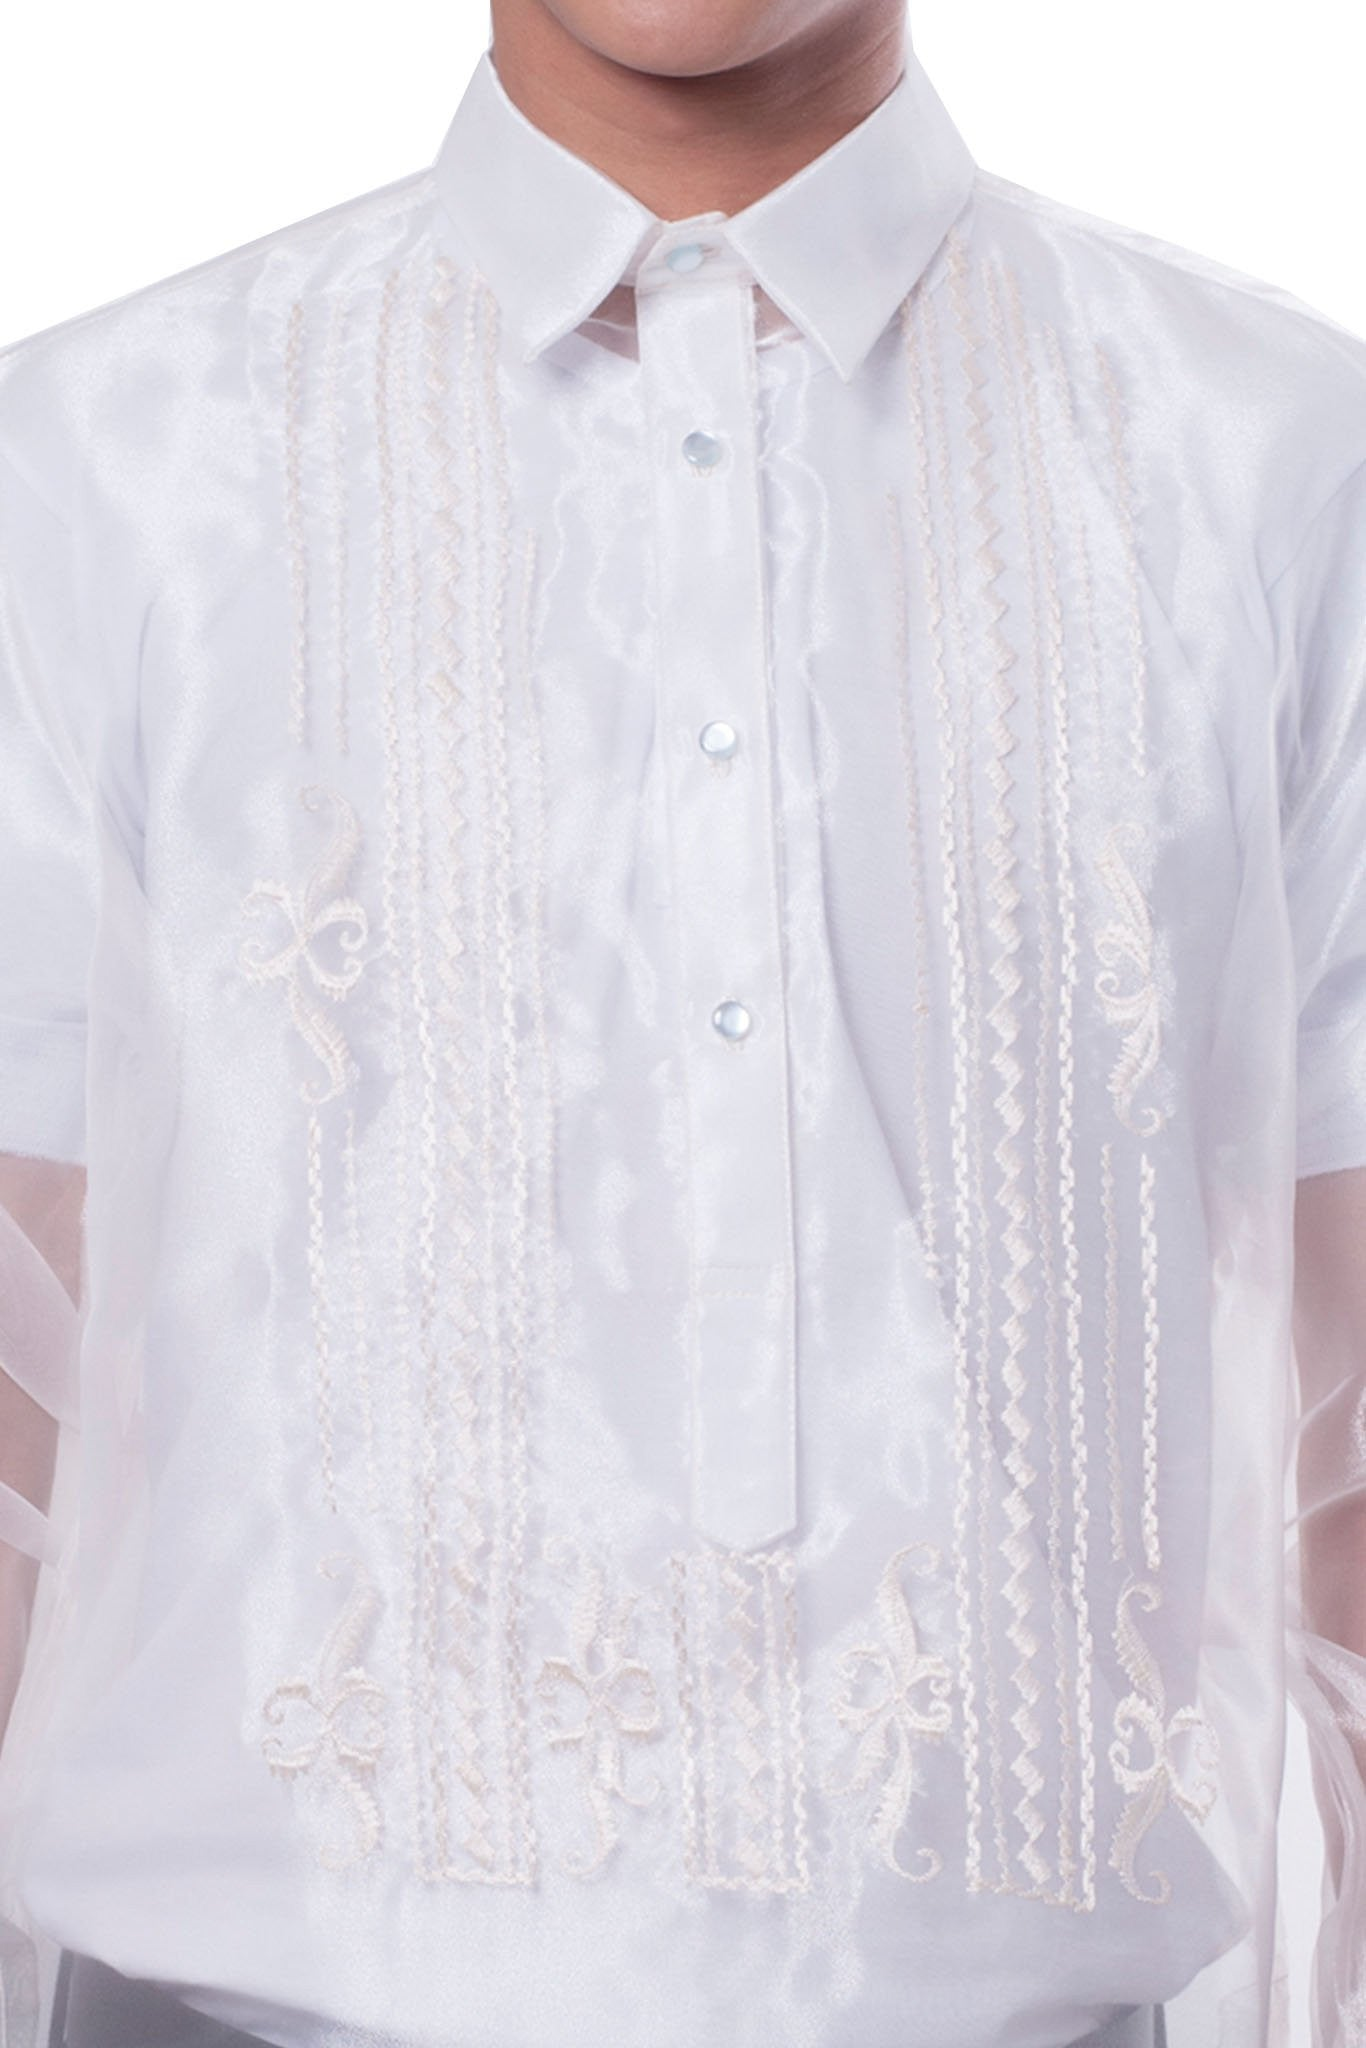 Quality Barong Tagalog Lowest Prices Top Service at Barong Warehouse